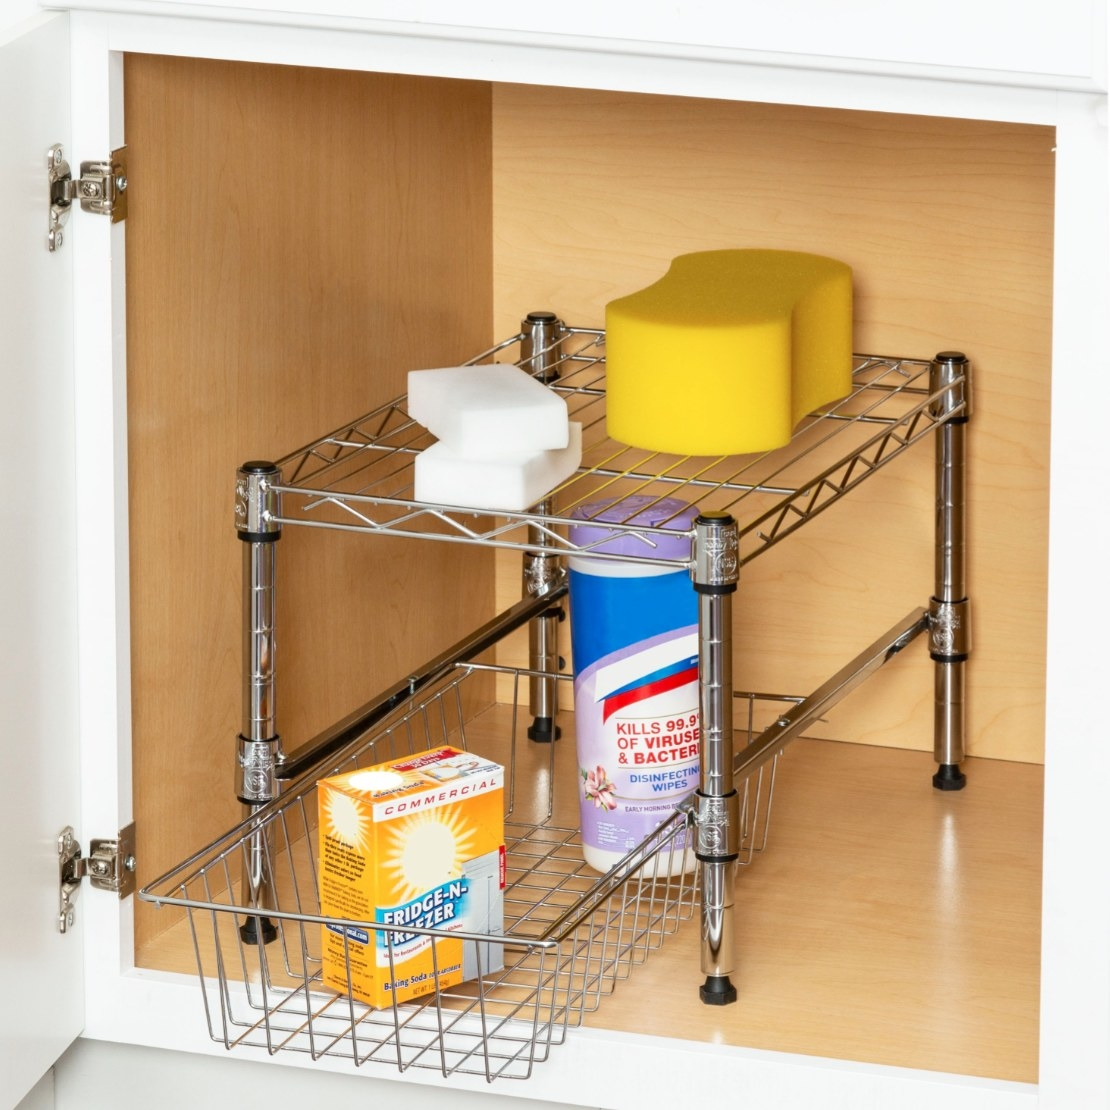 The under-the-cabinet storage item being used to hold cleaning products